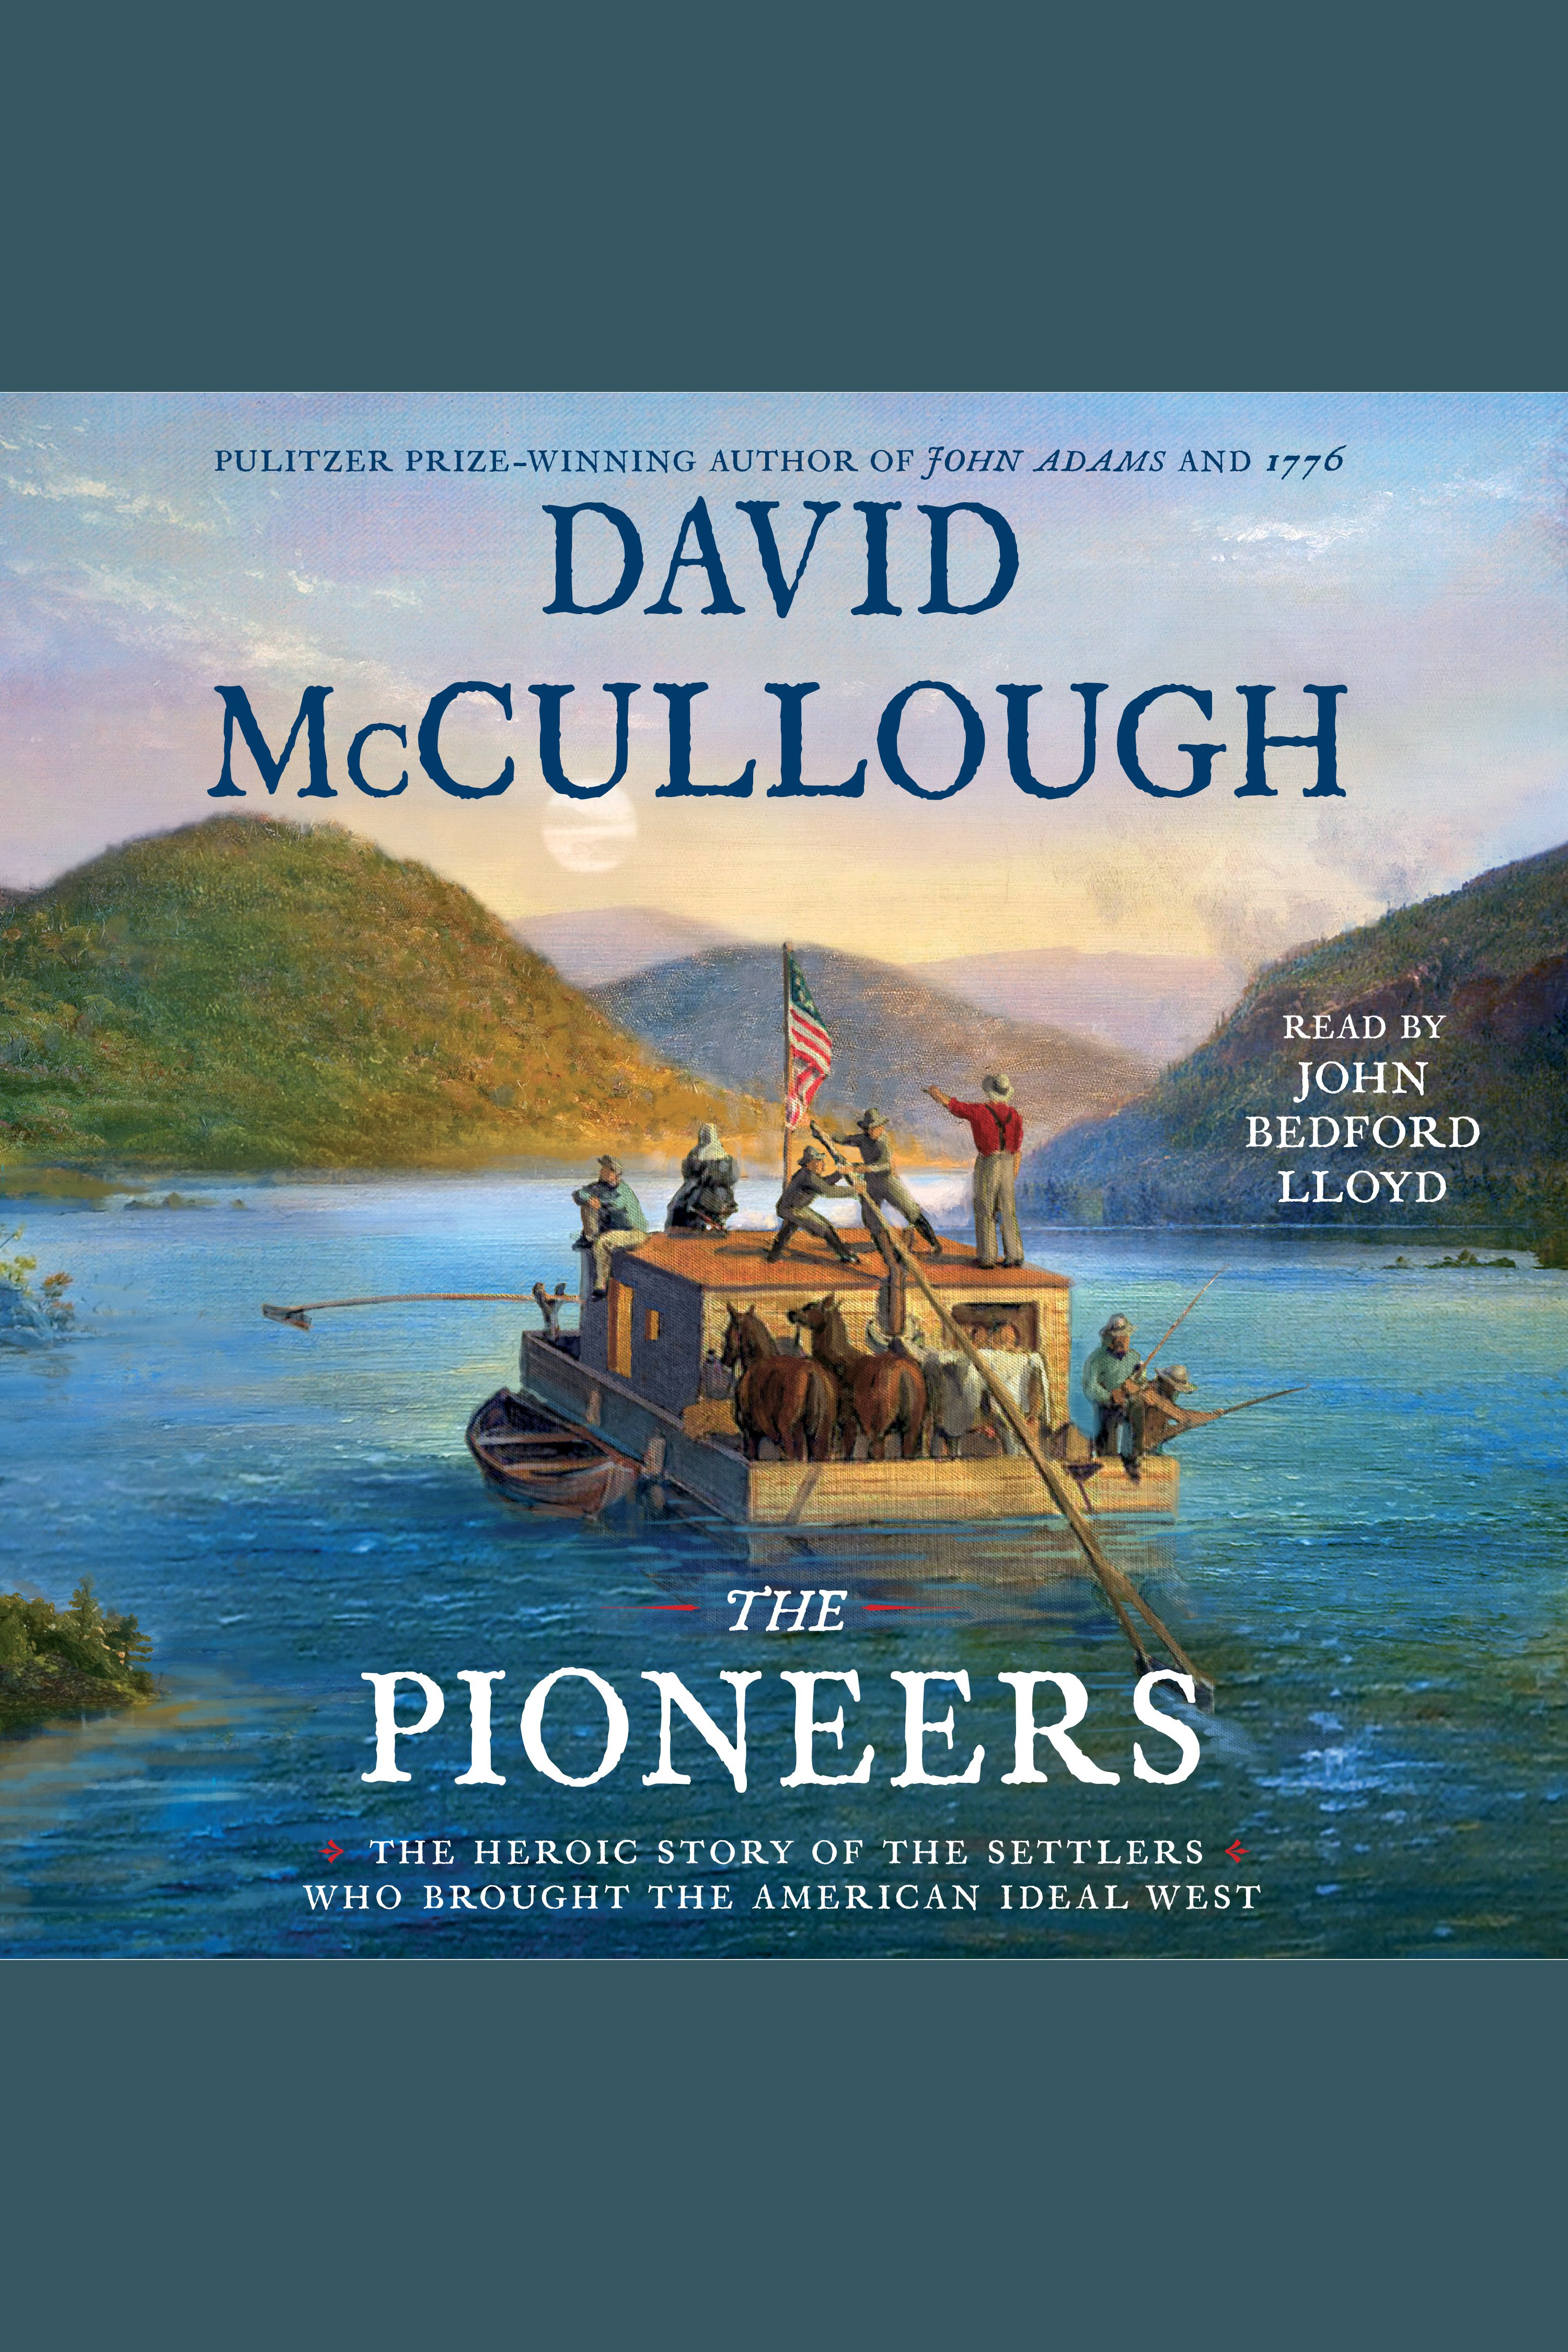 Pioneers, The [electronic resource] : The Heroic Story of the Settlers Who Brought the American Ideal West